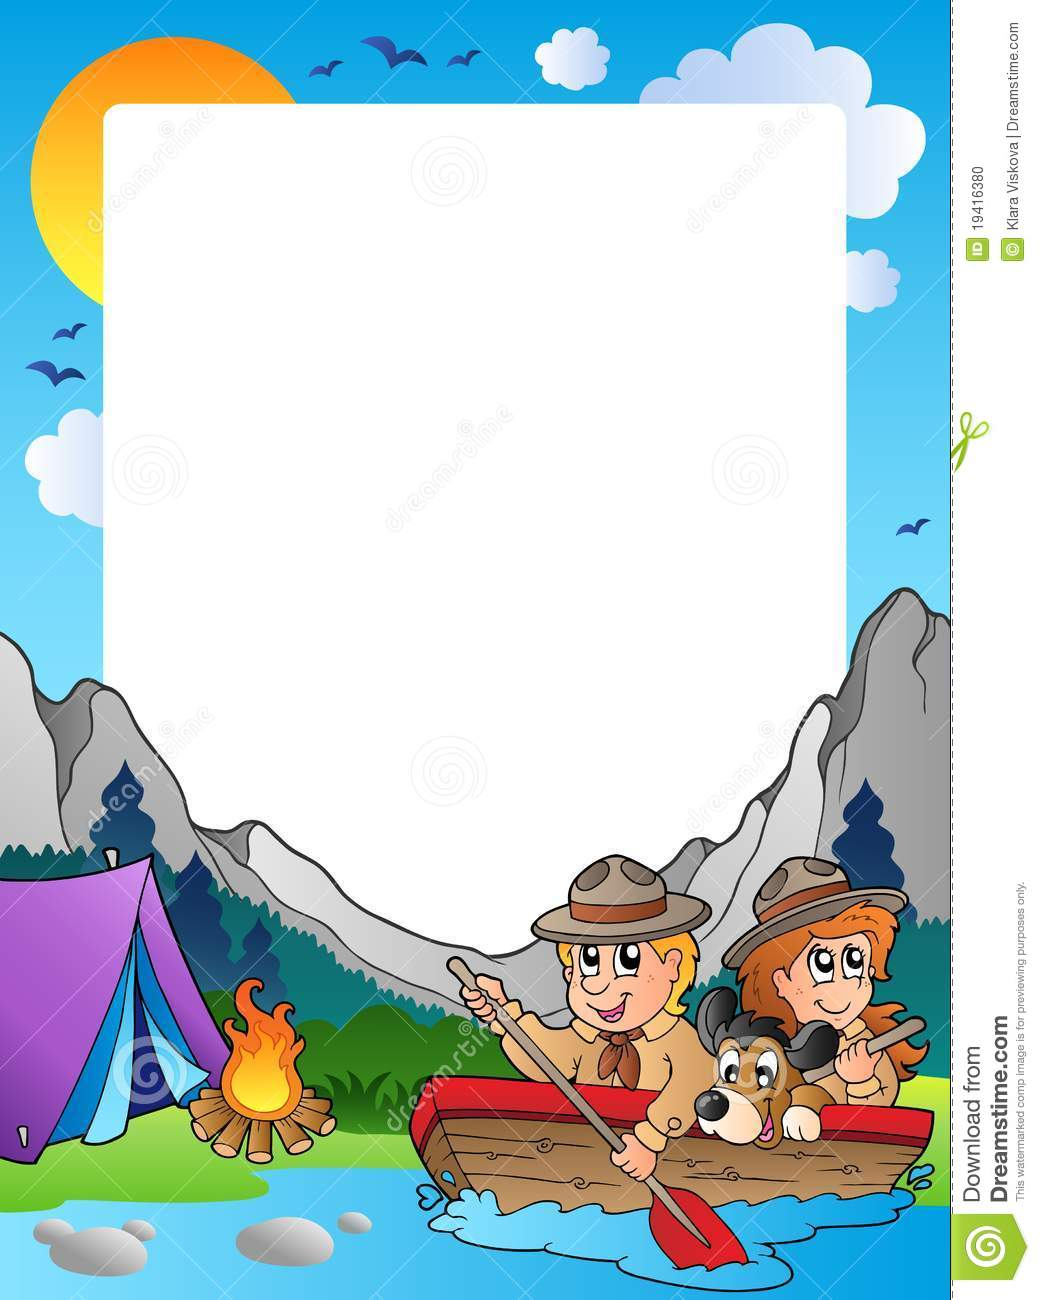 Summer Frame With Scout Theme 4 Stock Vector ...